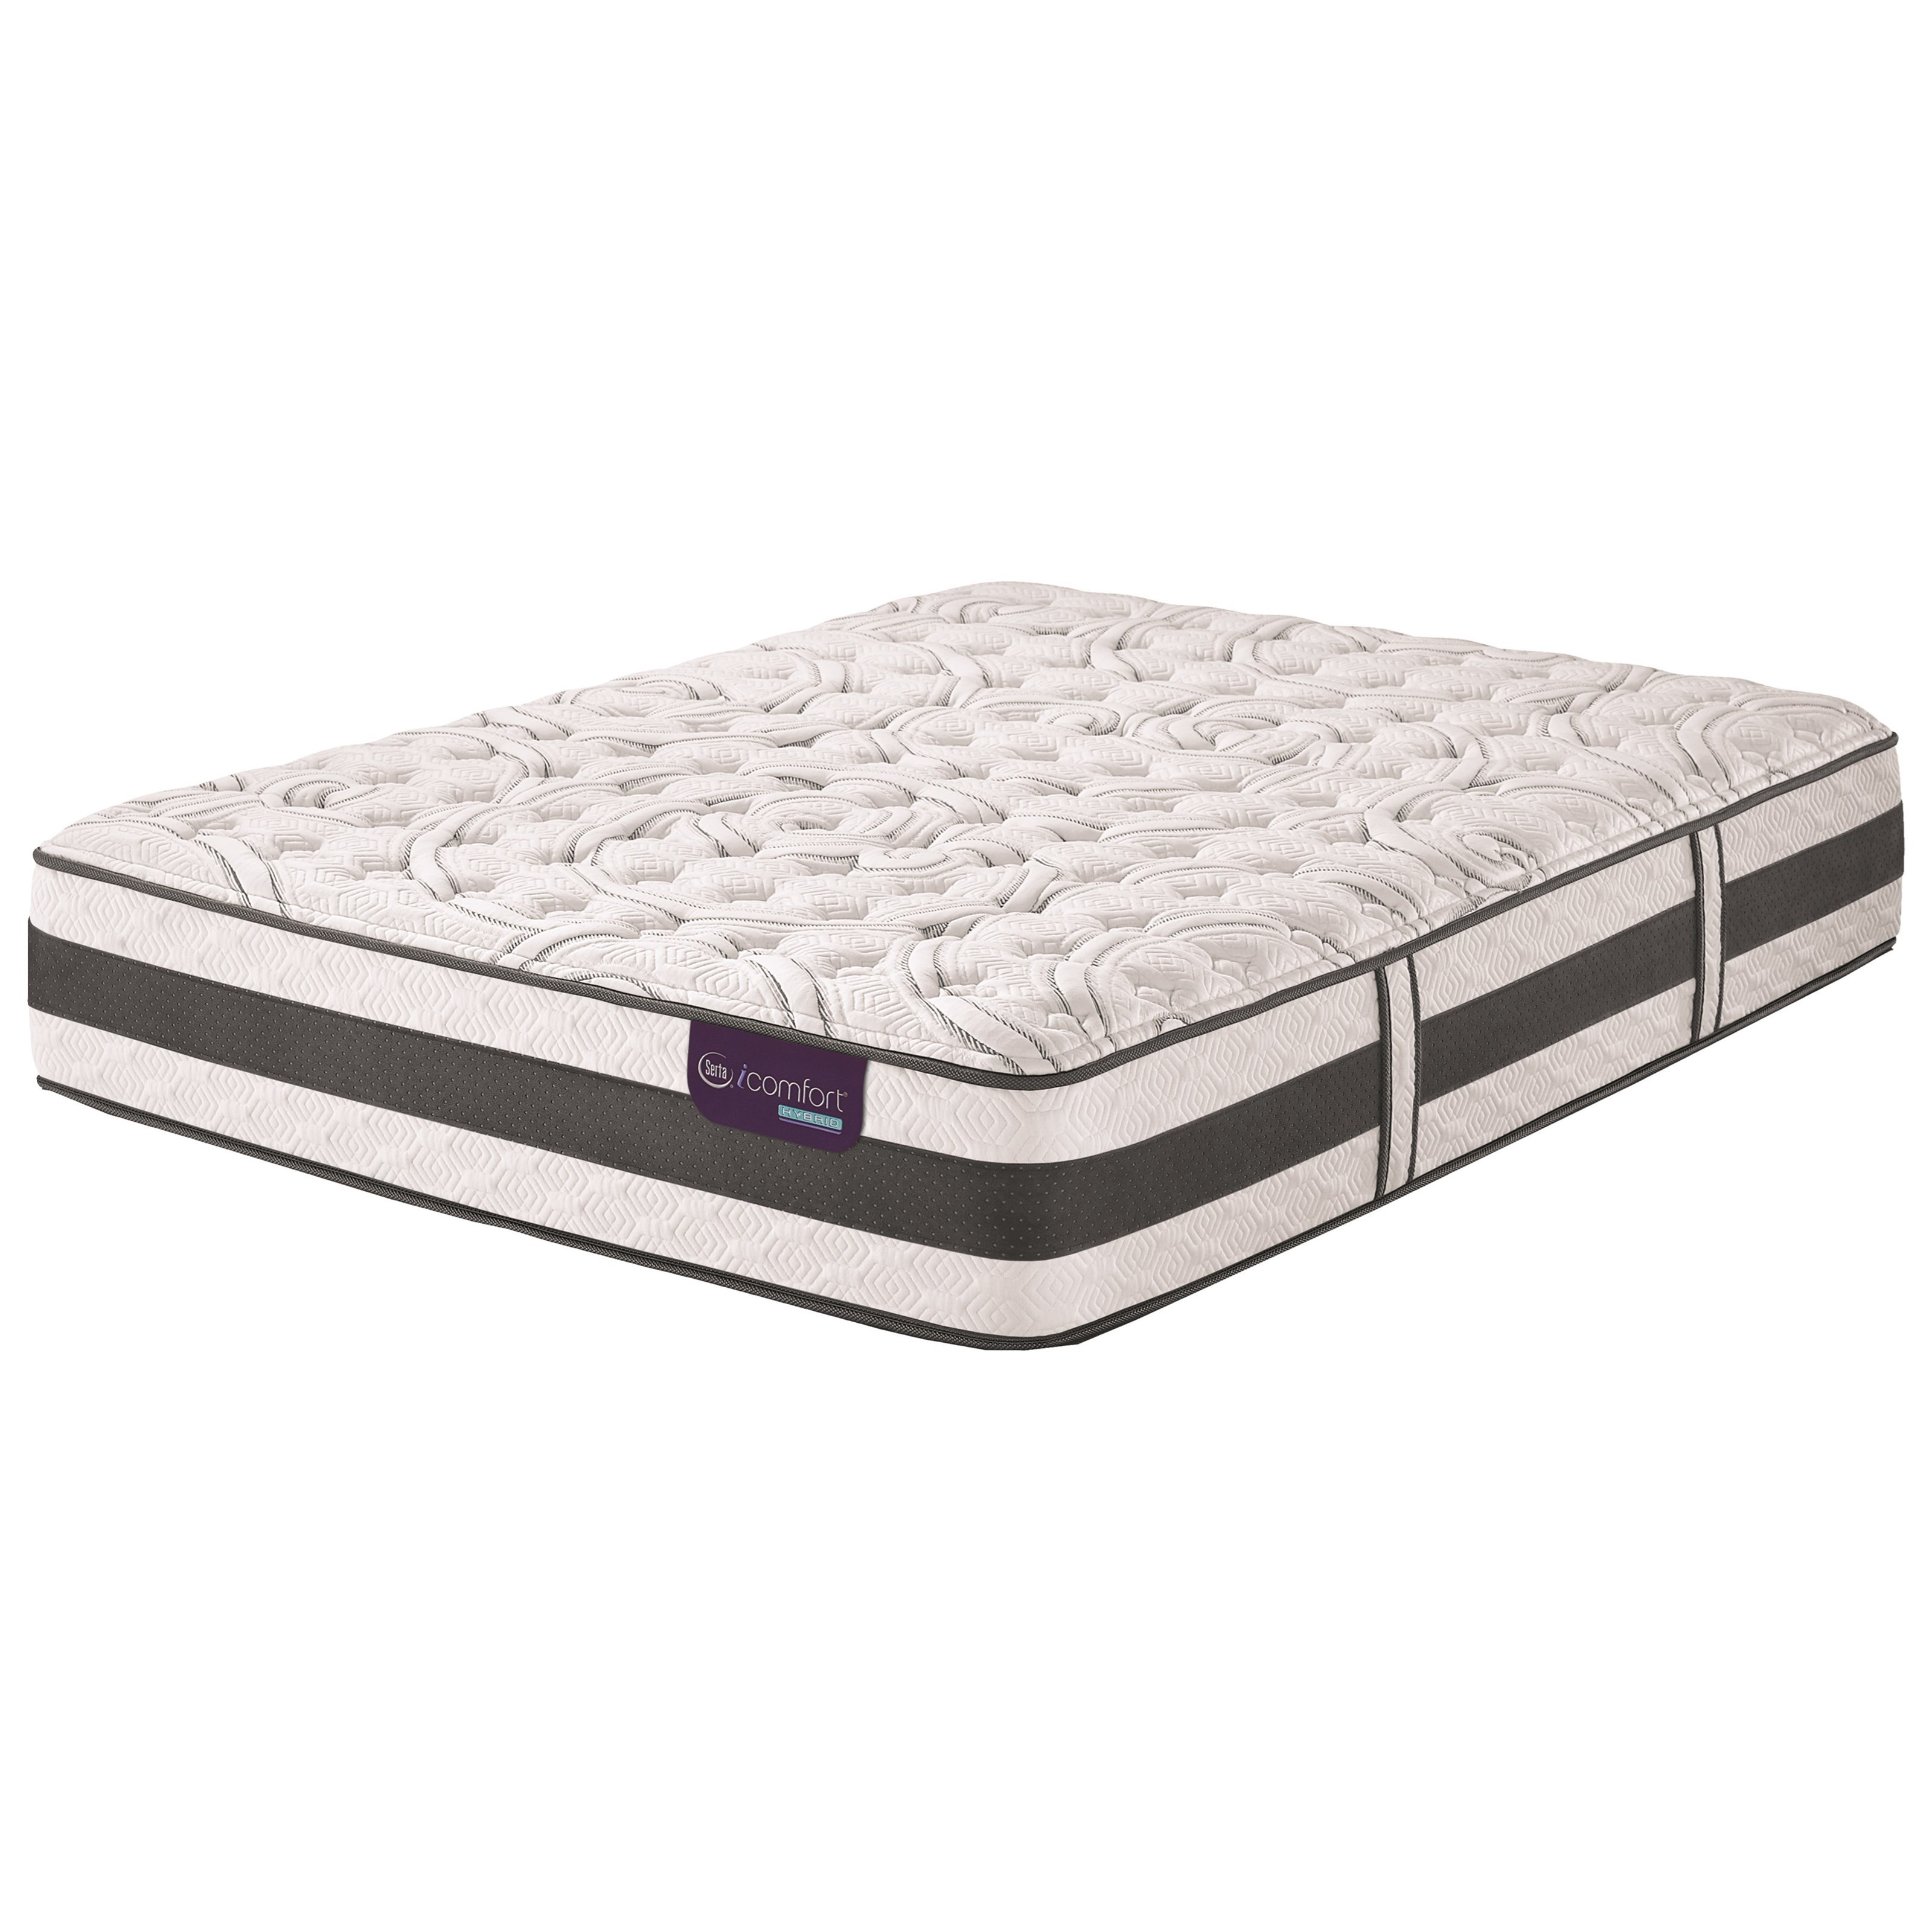 Serta iComfort Hybrid Recognition Queen Extra Firm Hybrid Quilted Mattress - Item Number: RecgntnExtFirm-Q